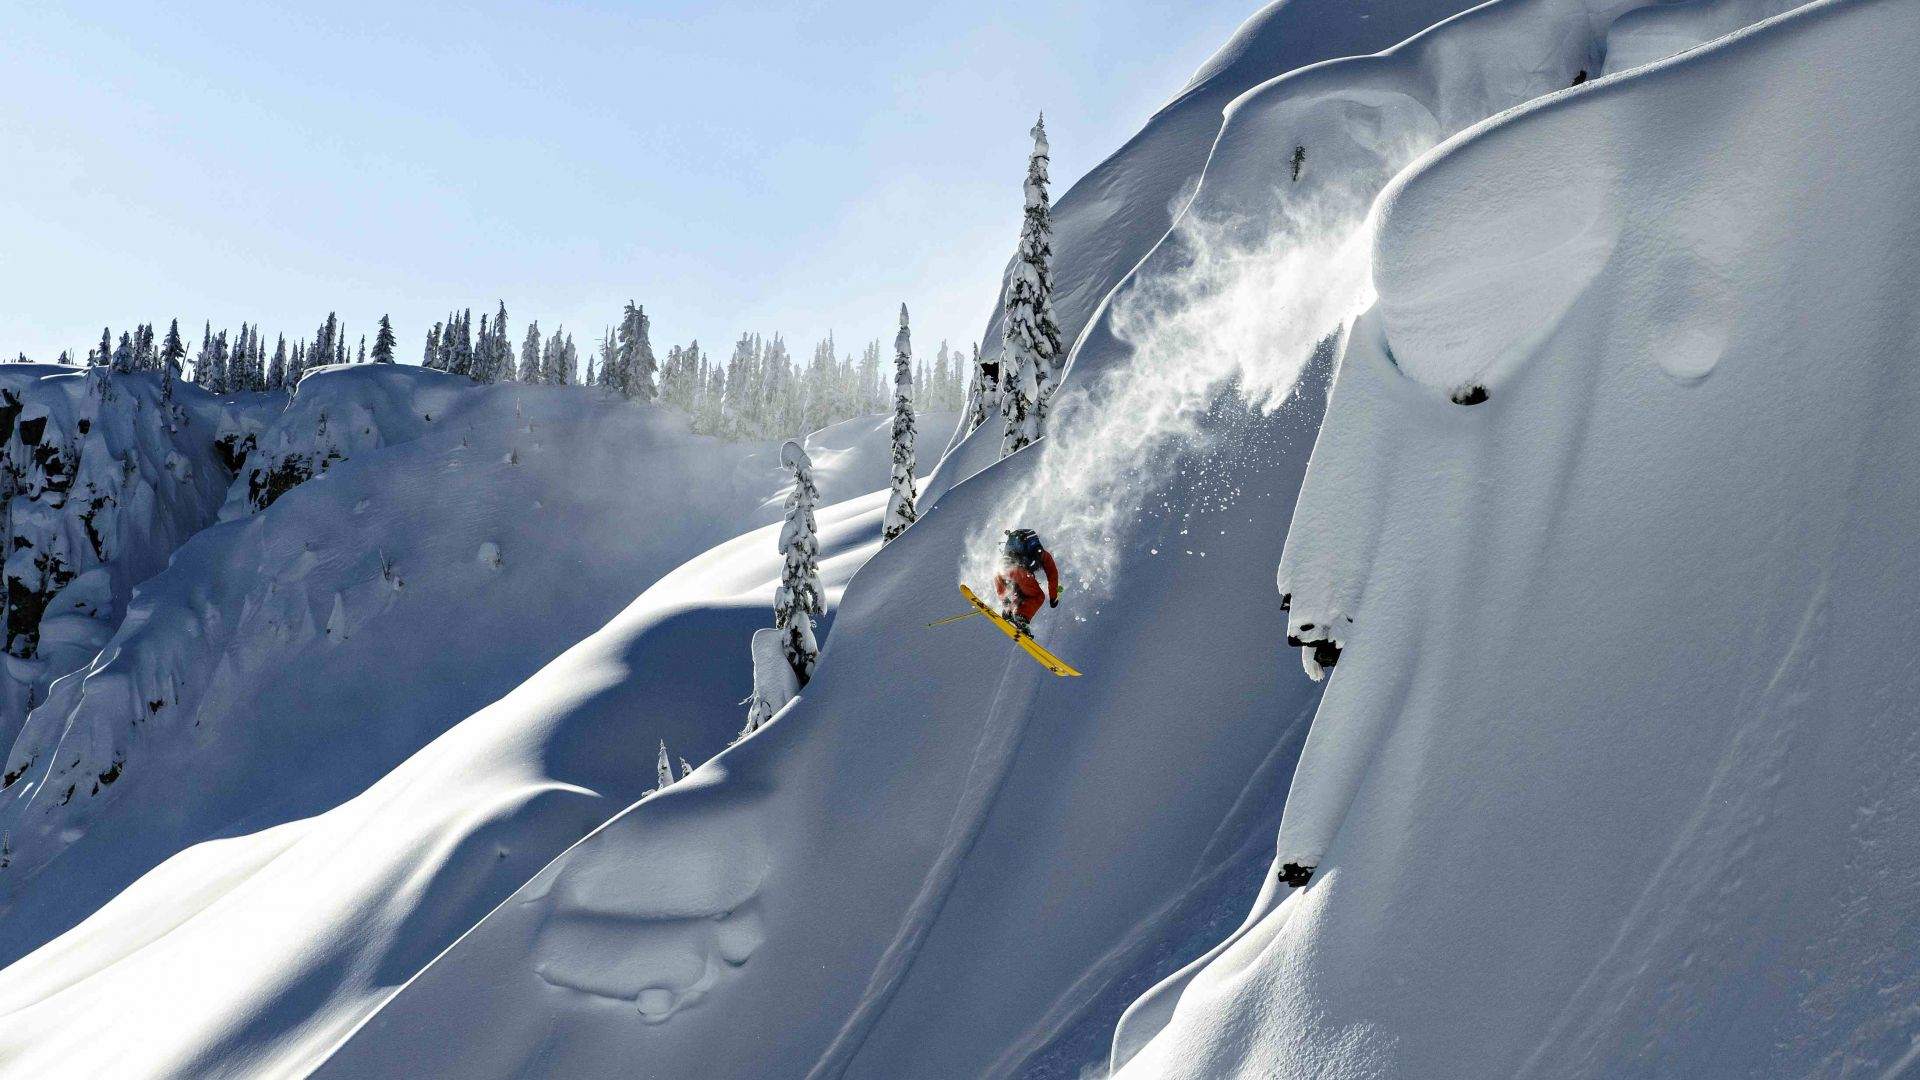 Alaska Heliskiing, Haines, USA, Thomas Hlawitschka, skiing, winter, snow, mountains